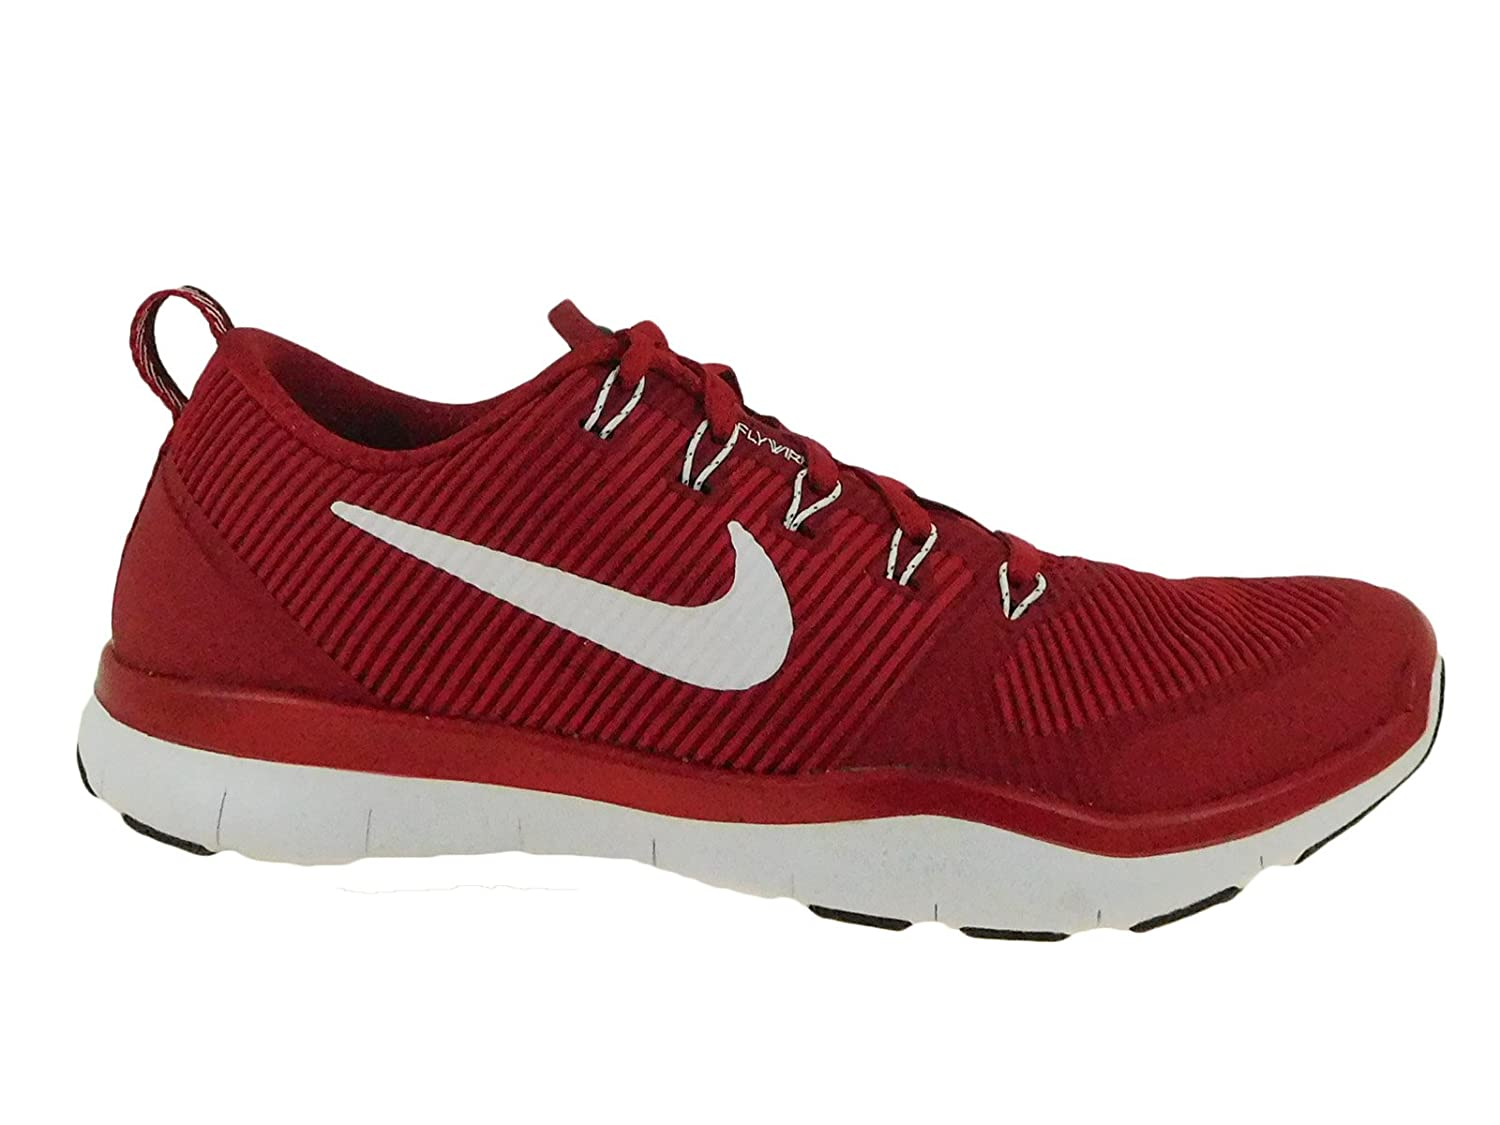 NIKE Men's Free Train Versatility Running Shoes B071ZTJ7T4 11 D(M) US|Gym Red/White/Black